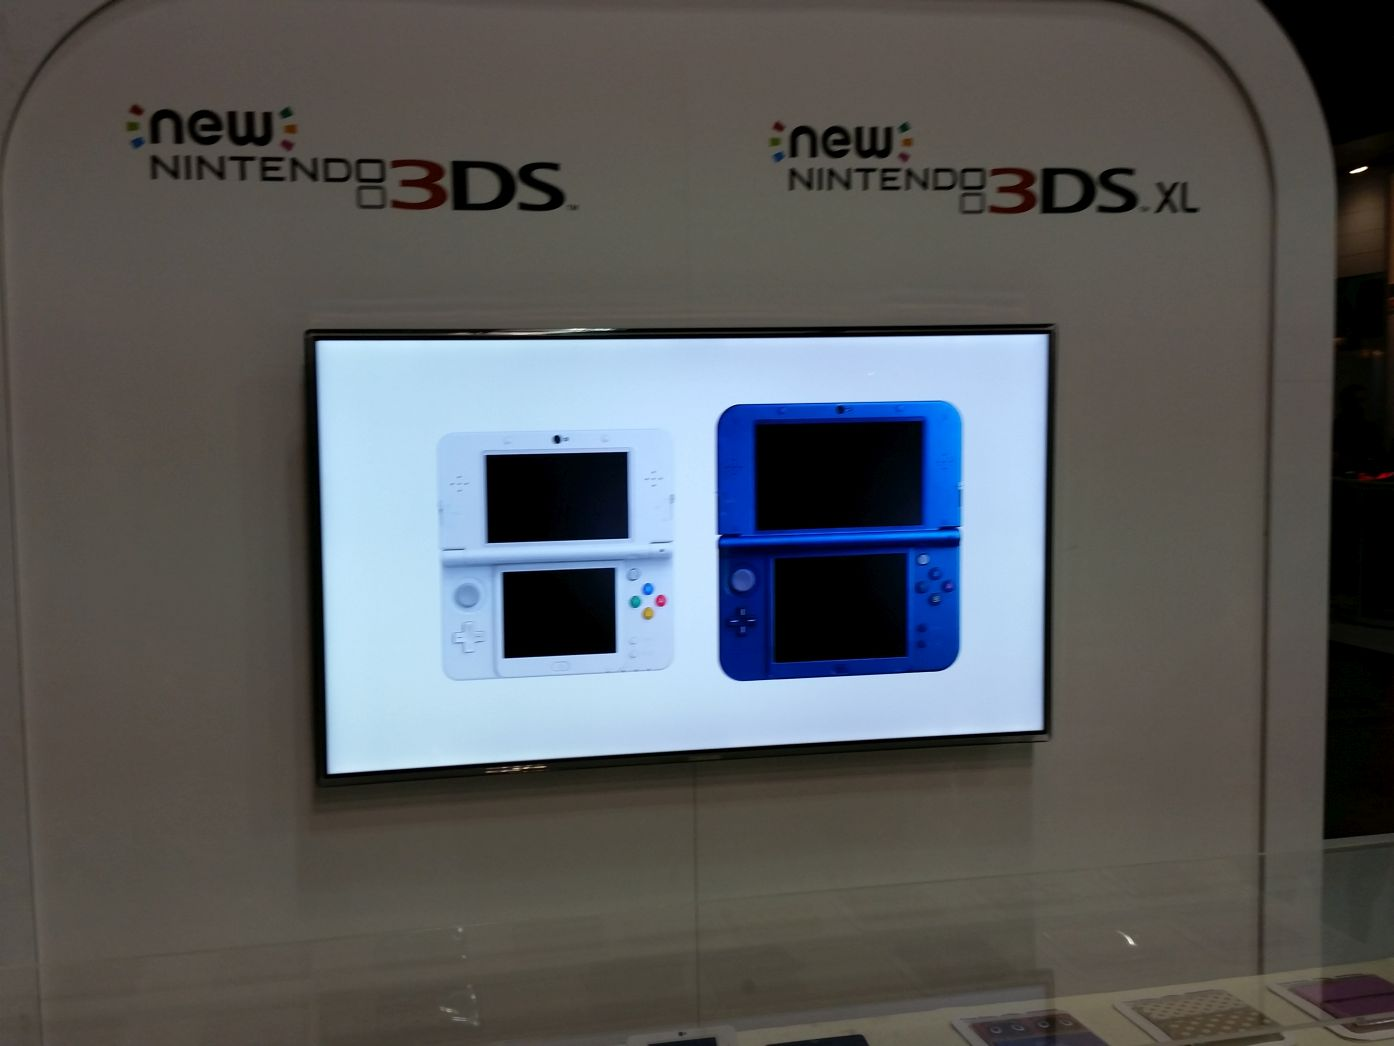 new 3ds 13